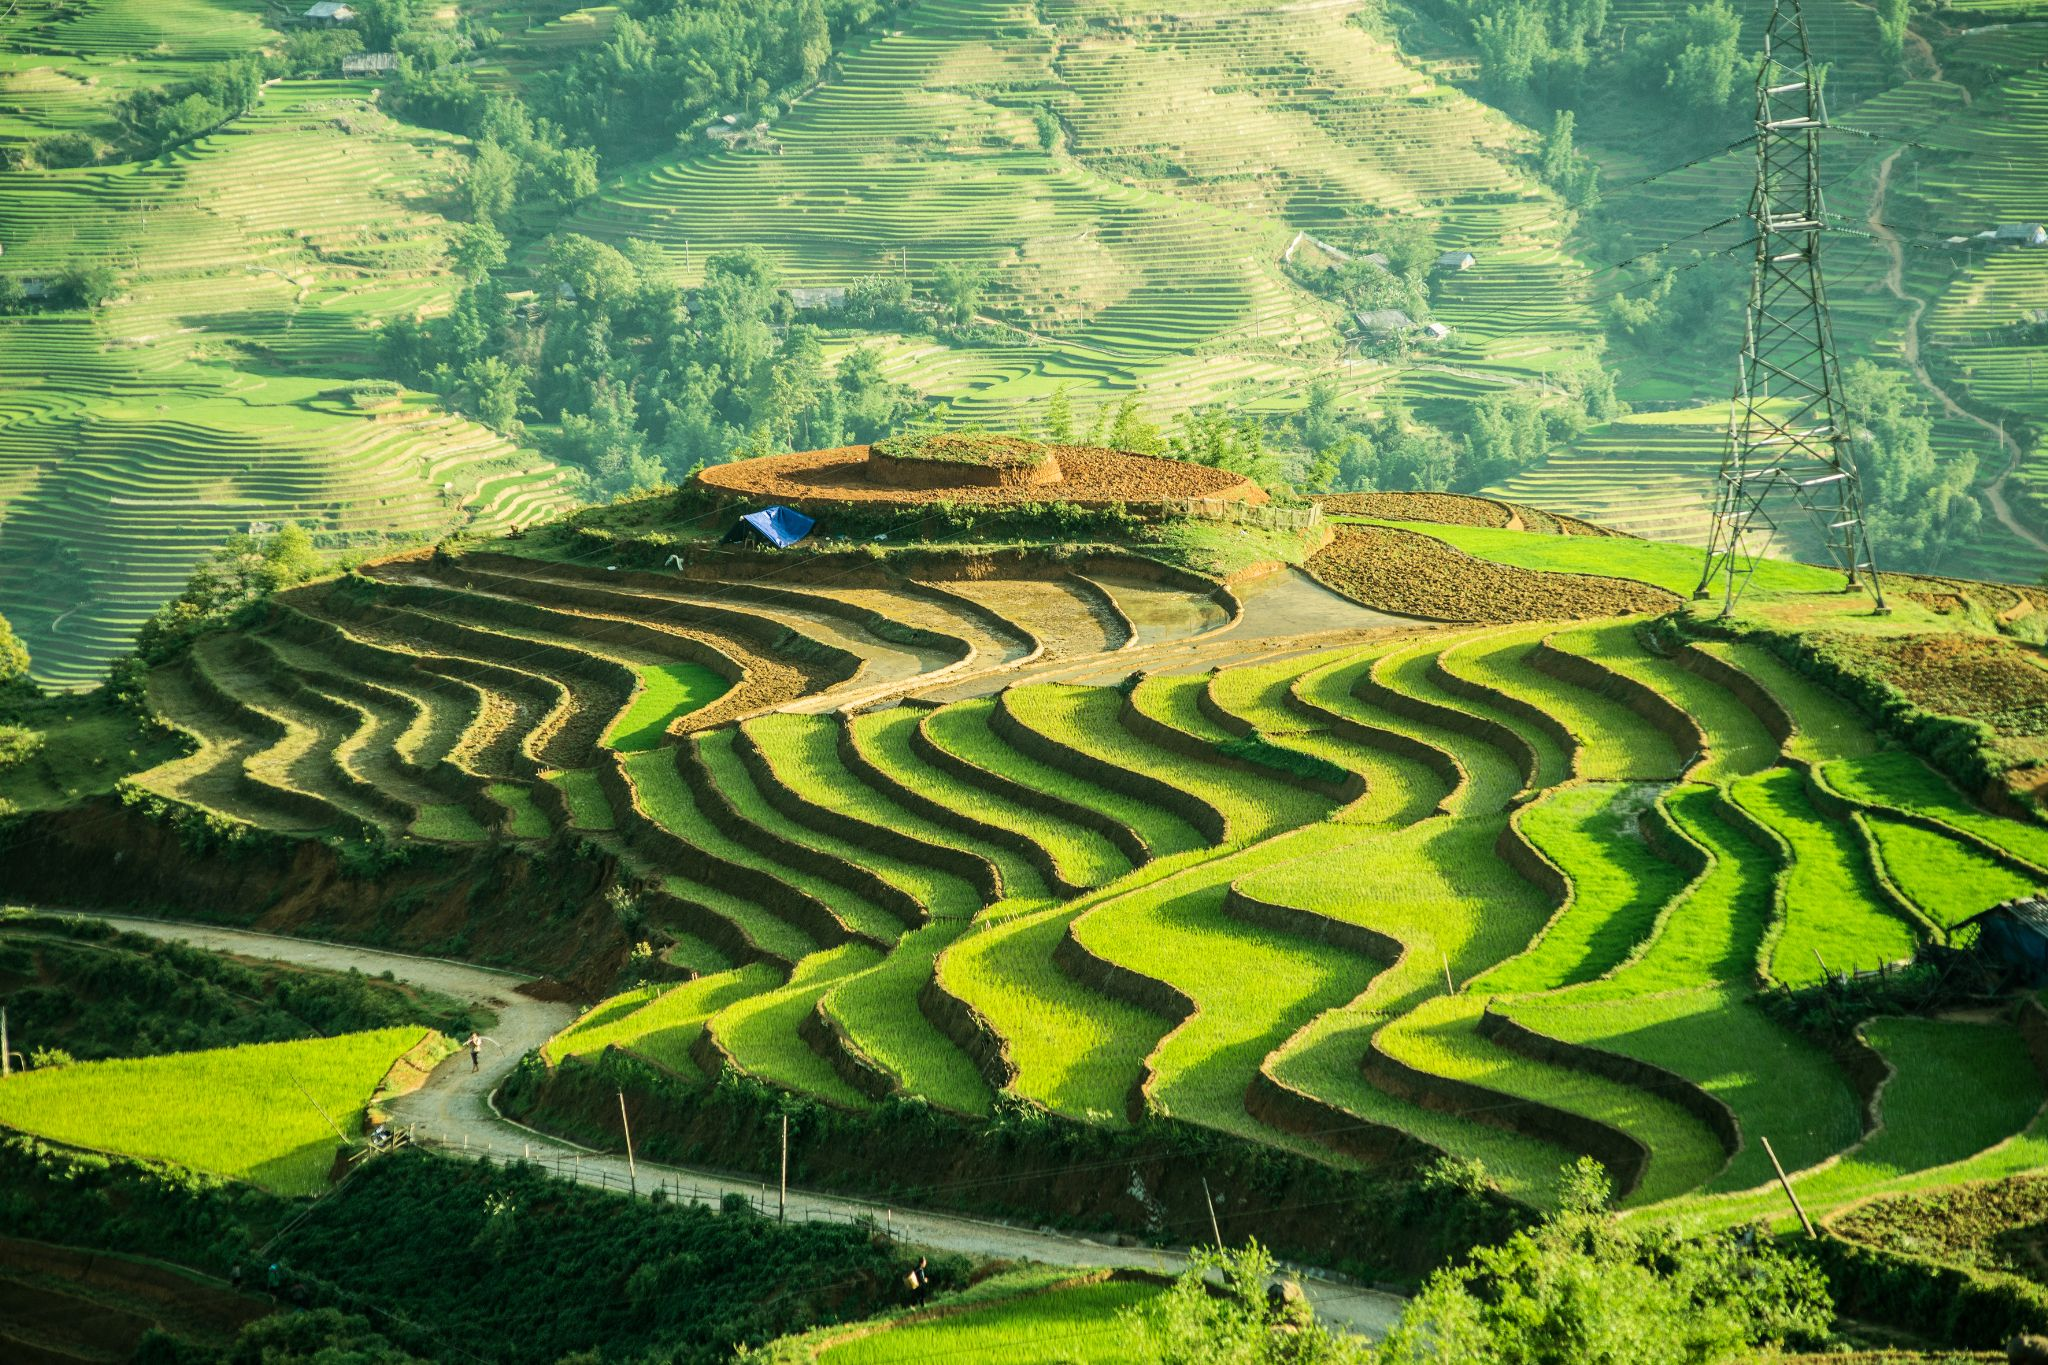 Terraced fields in Sapa, Lao Cai by NguyenTrangKimCuong